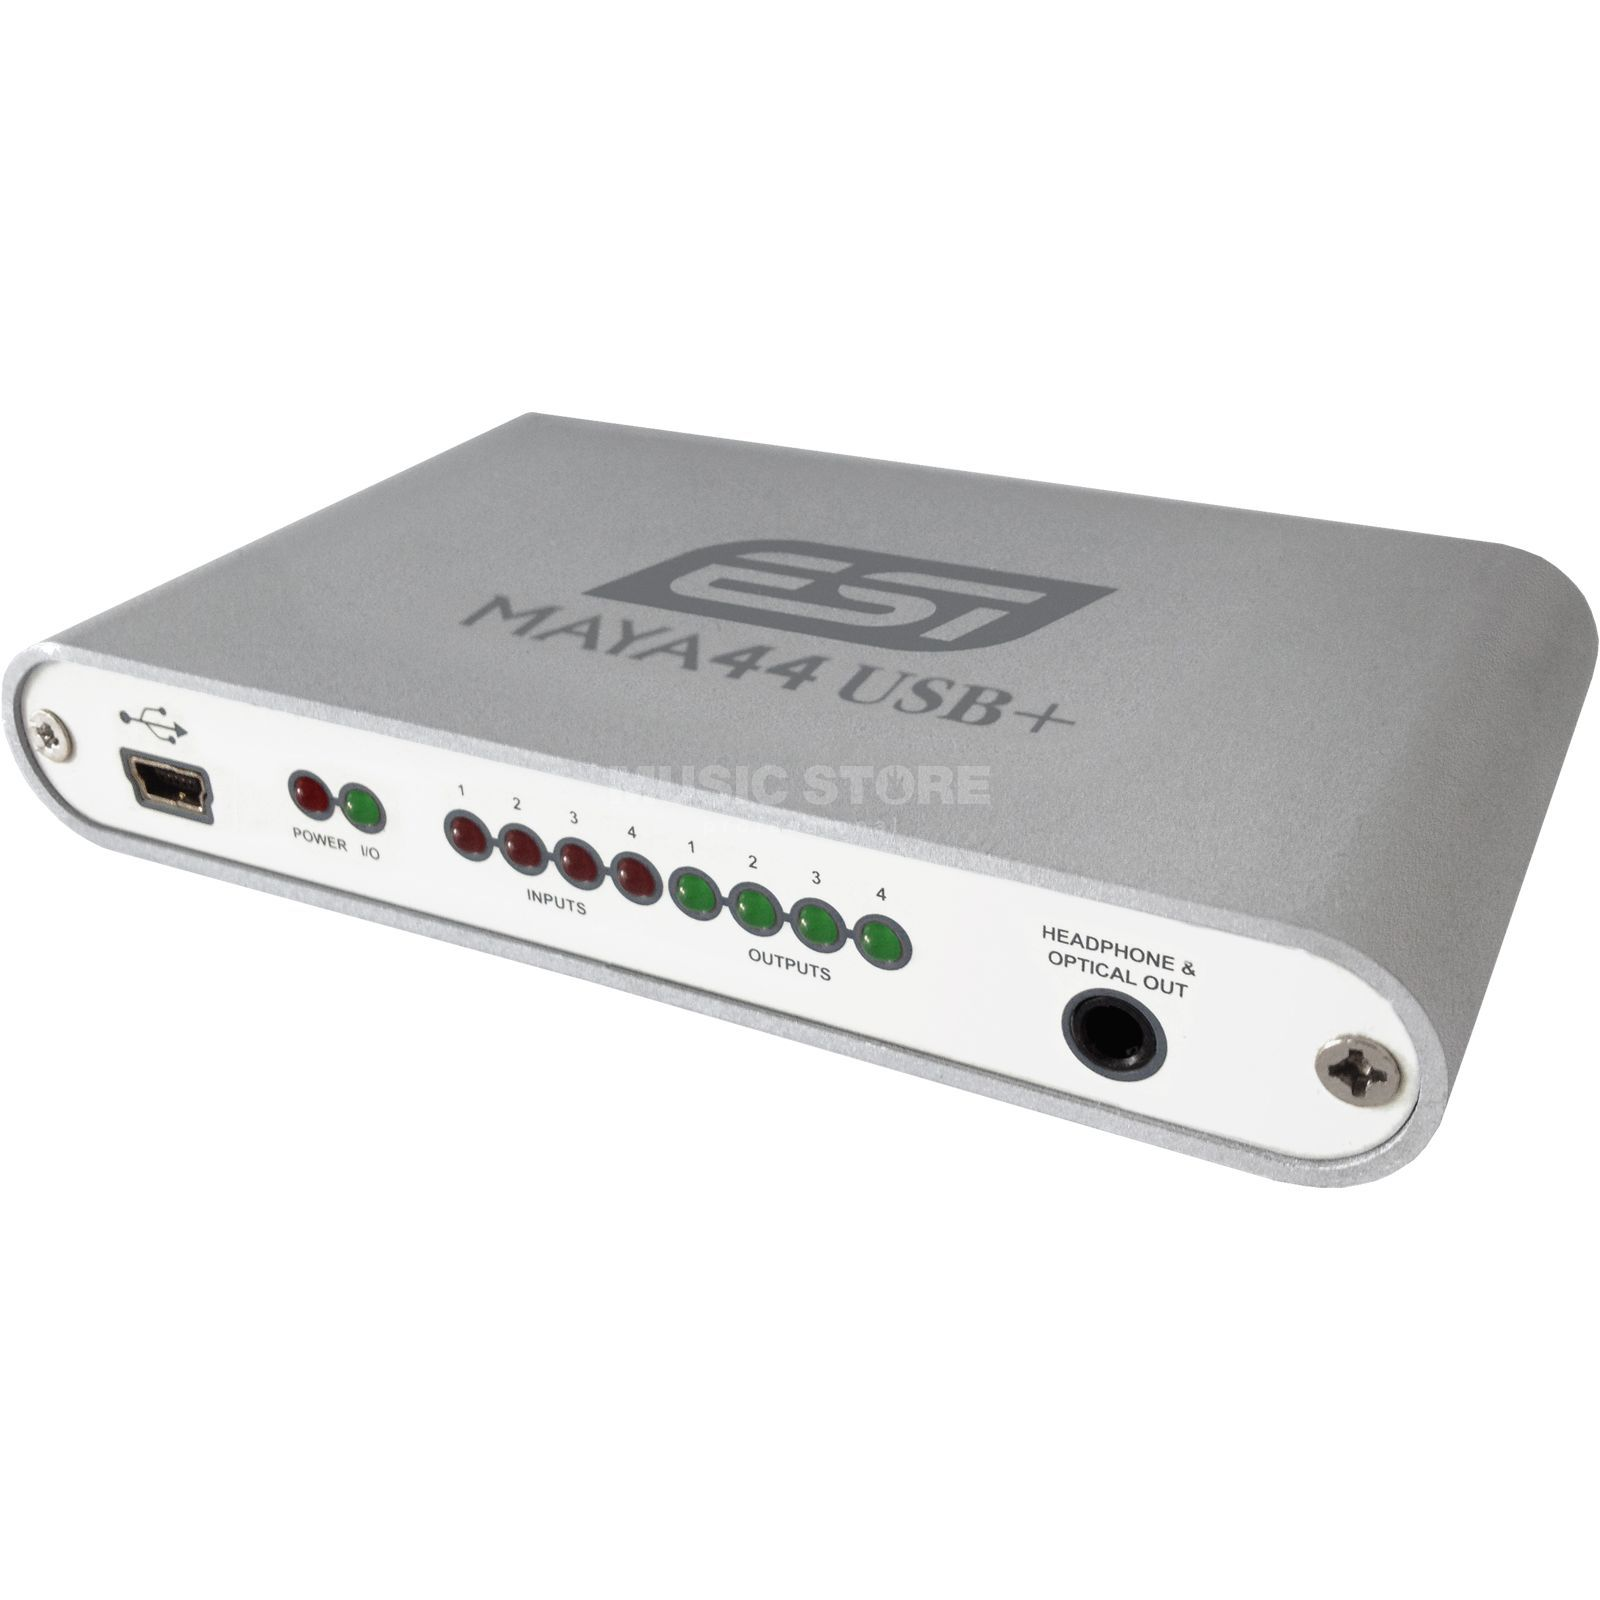 ESI Maya 44 USB  24-bit 44.1/48kHz  4X4 USB Audio Interface   Produktbillede